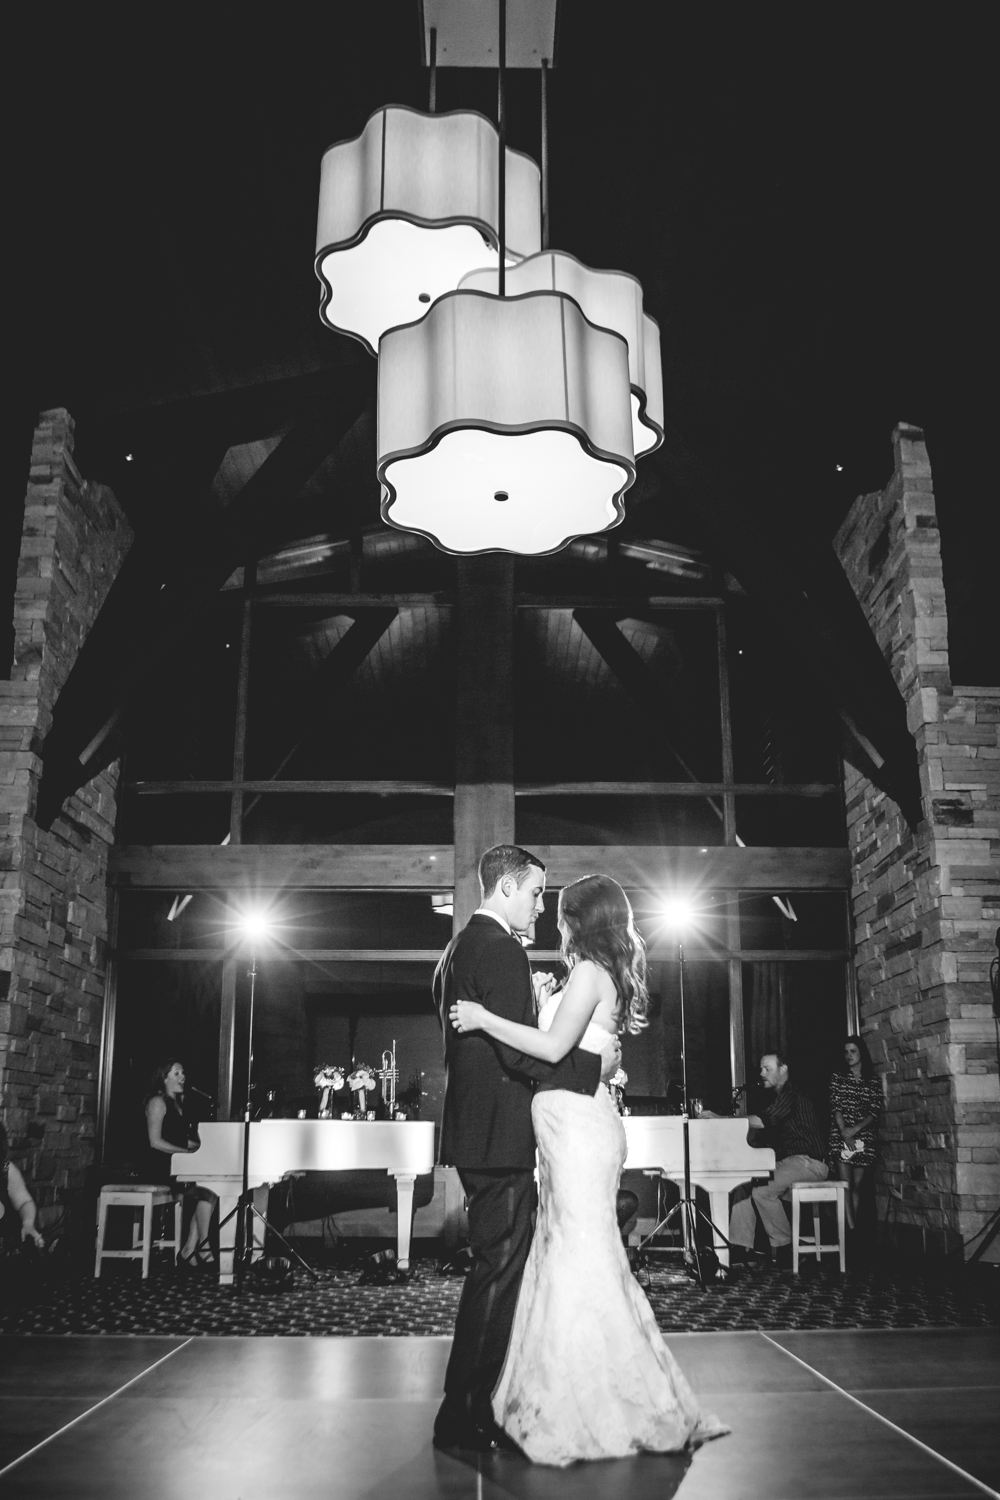 The first dance. Vail Colorado Wedding photographed by JMGant Photography.